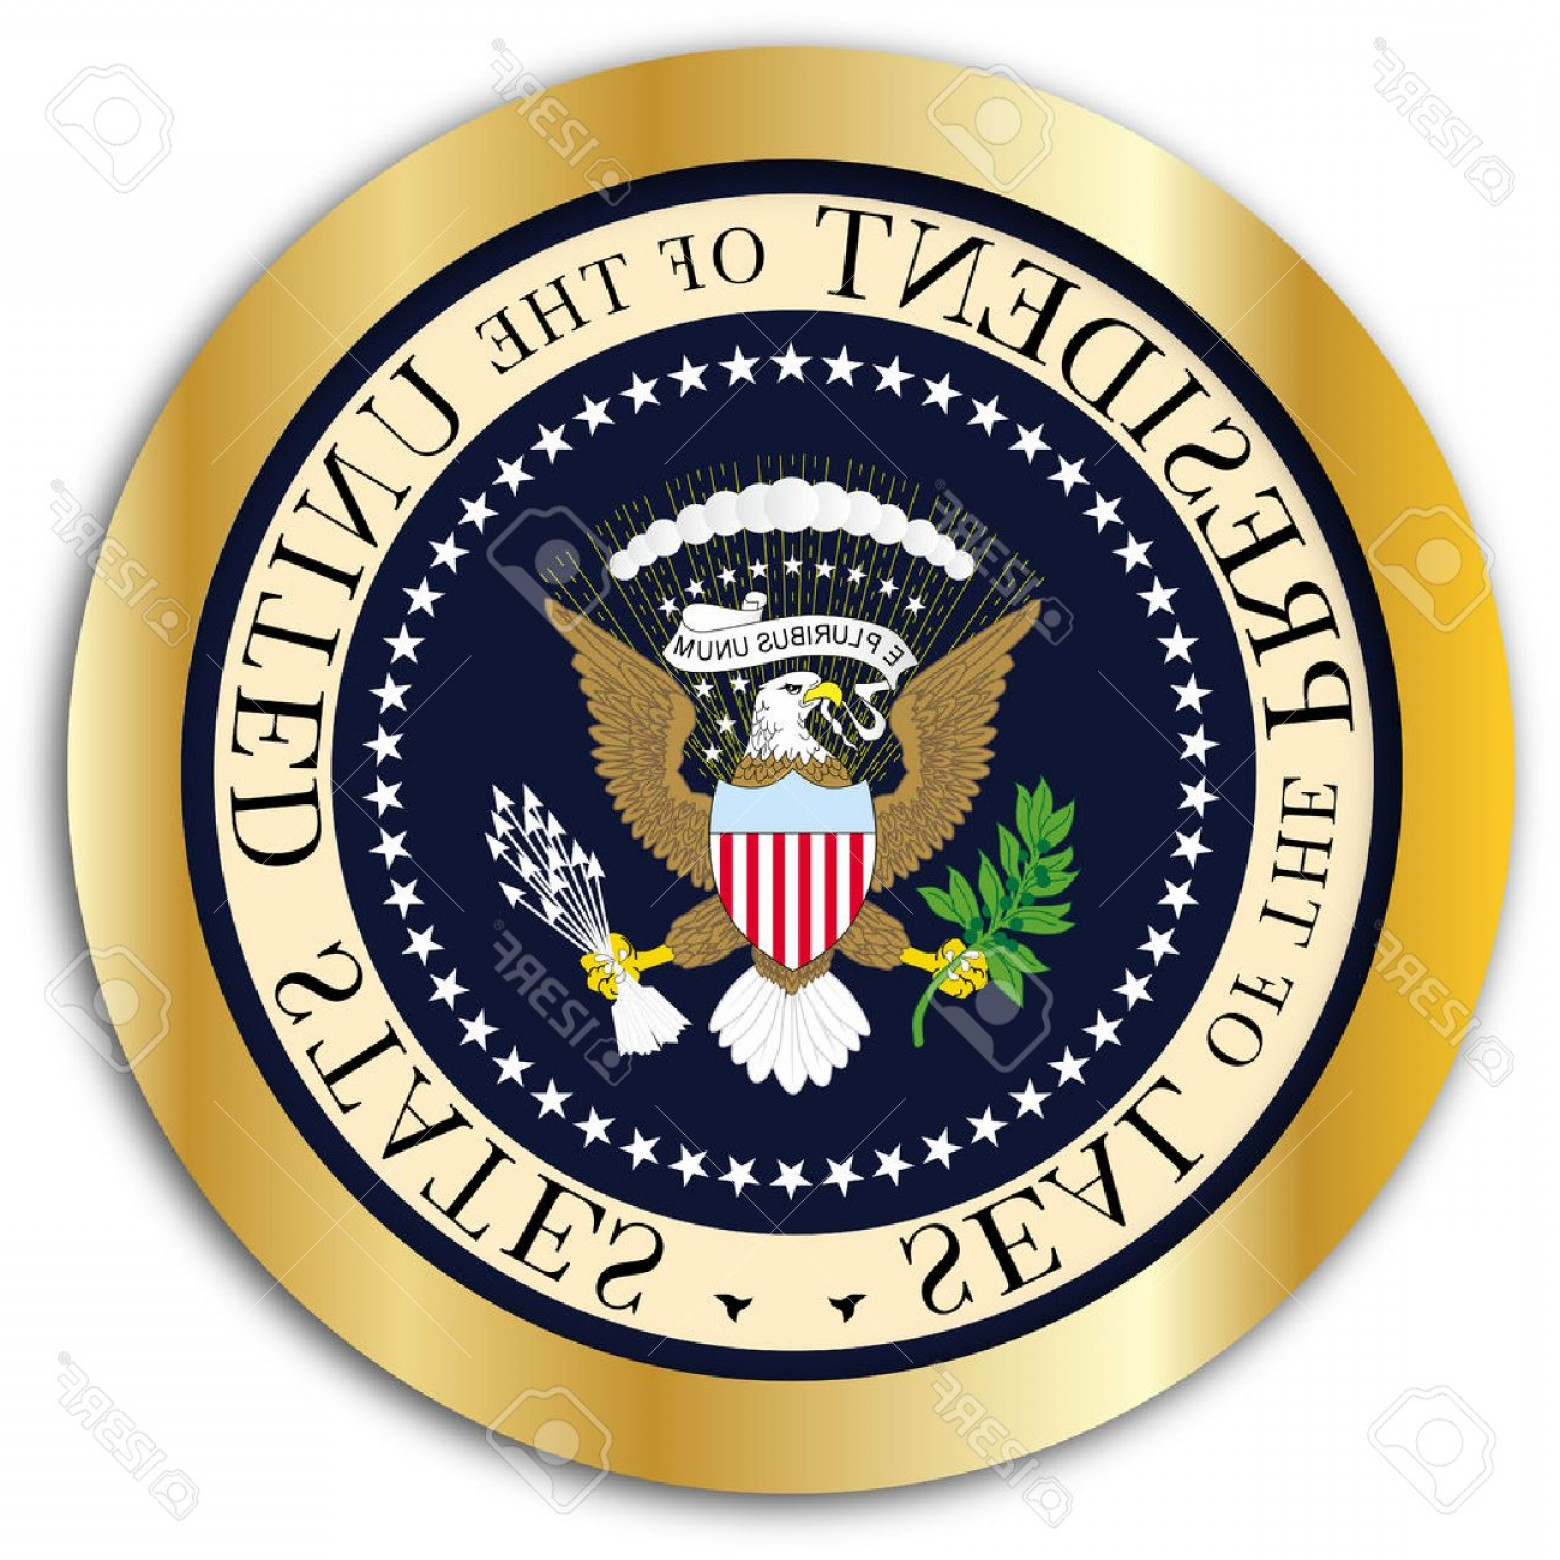 1560x1560 Photostock Vector A Depiction Of The Seal Of The President Of The